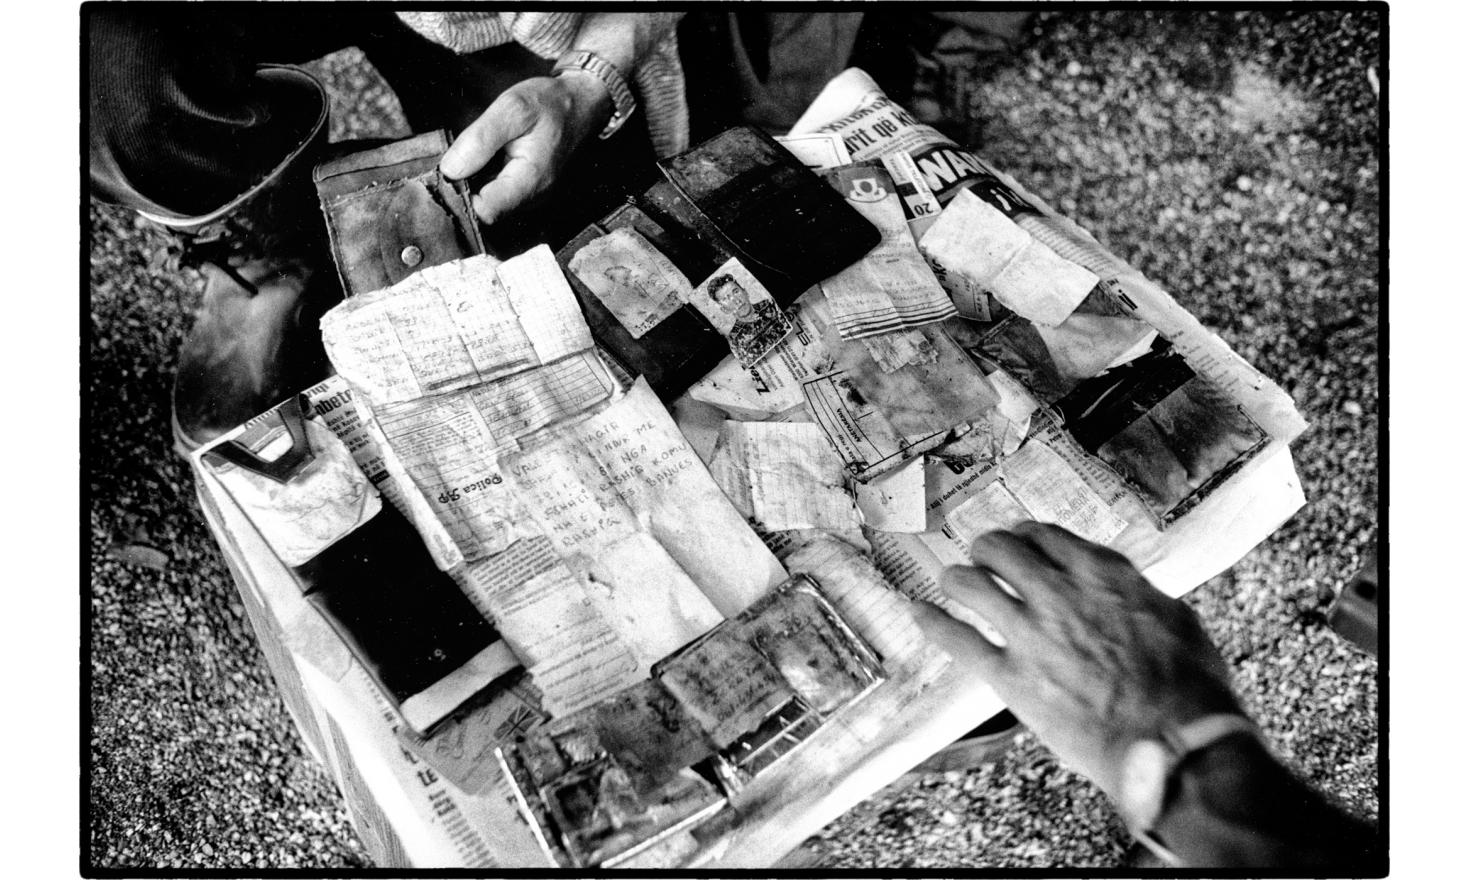 collection of personal items of villagers massacred by Serb forces. Lybenic, Kosovo. 07-1999